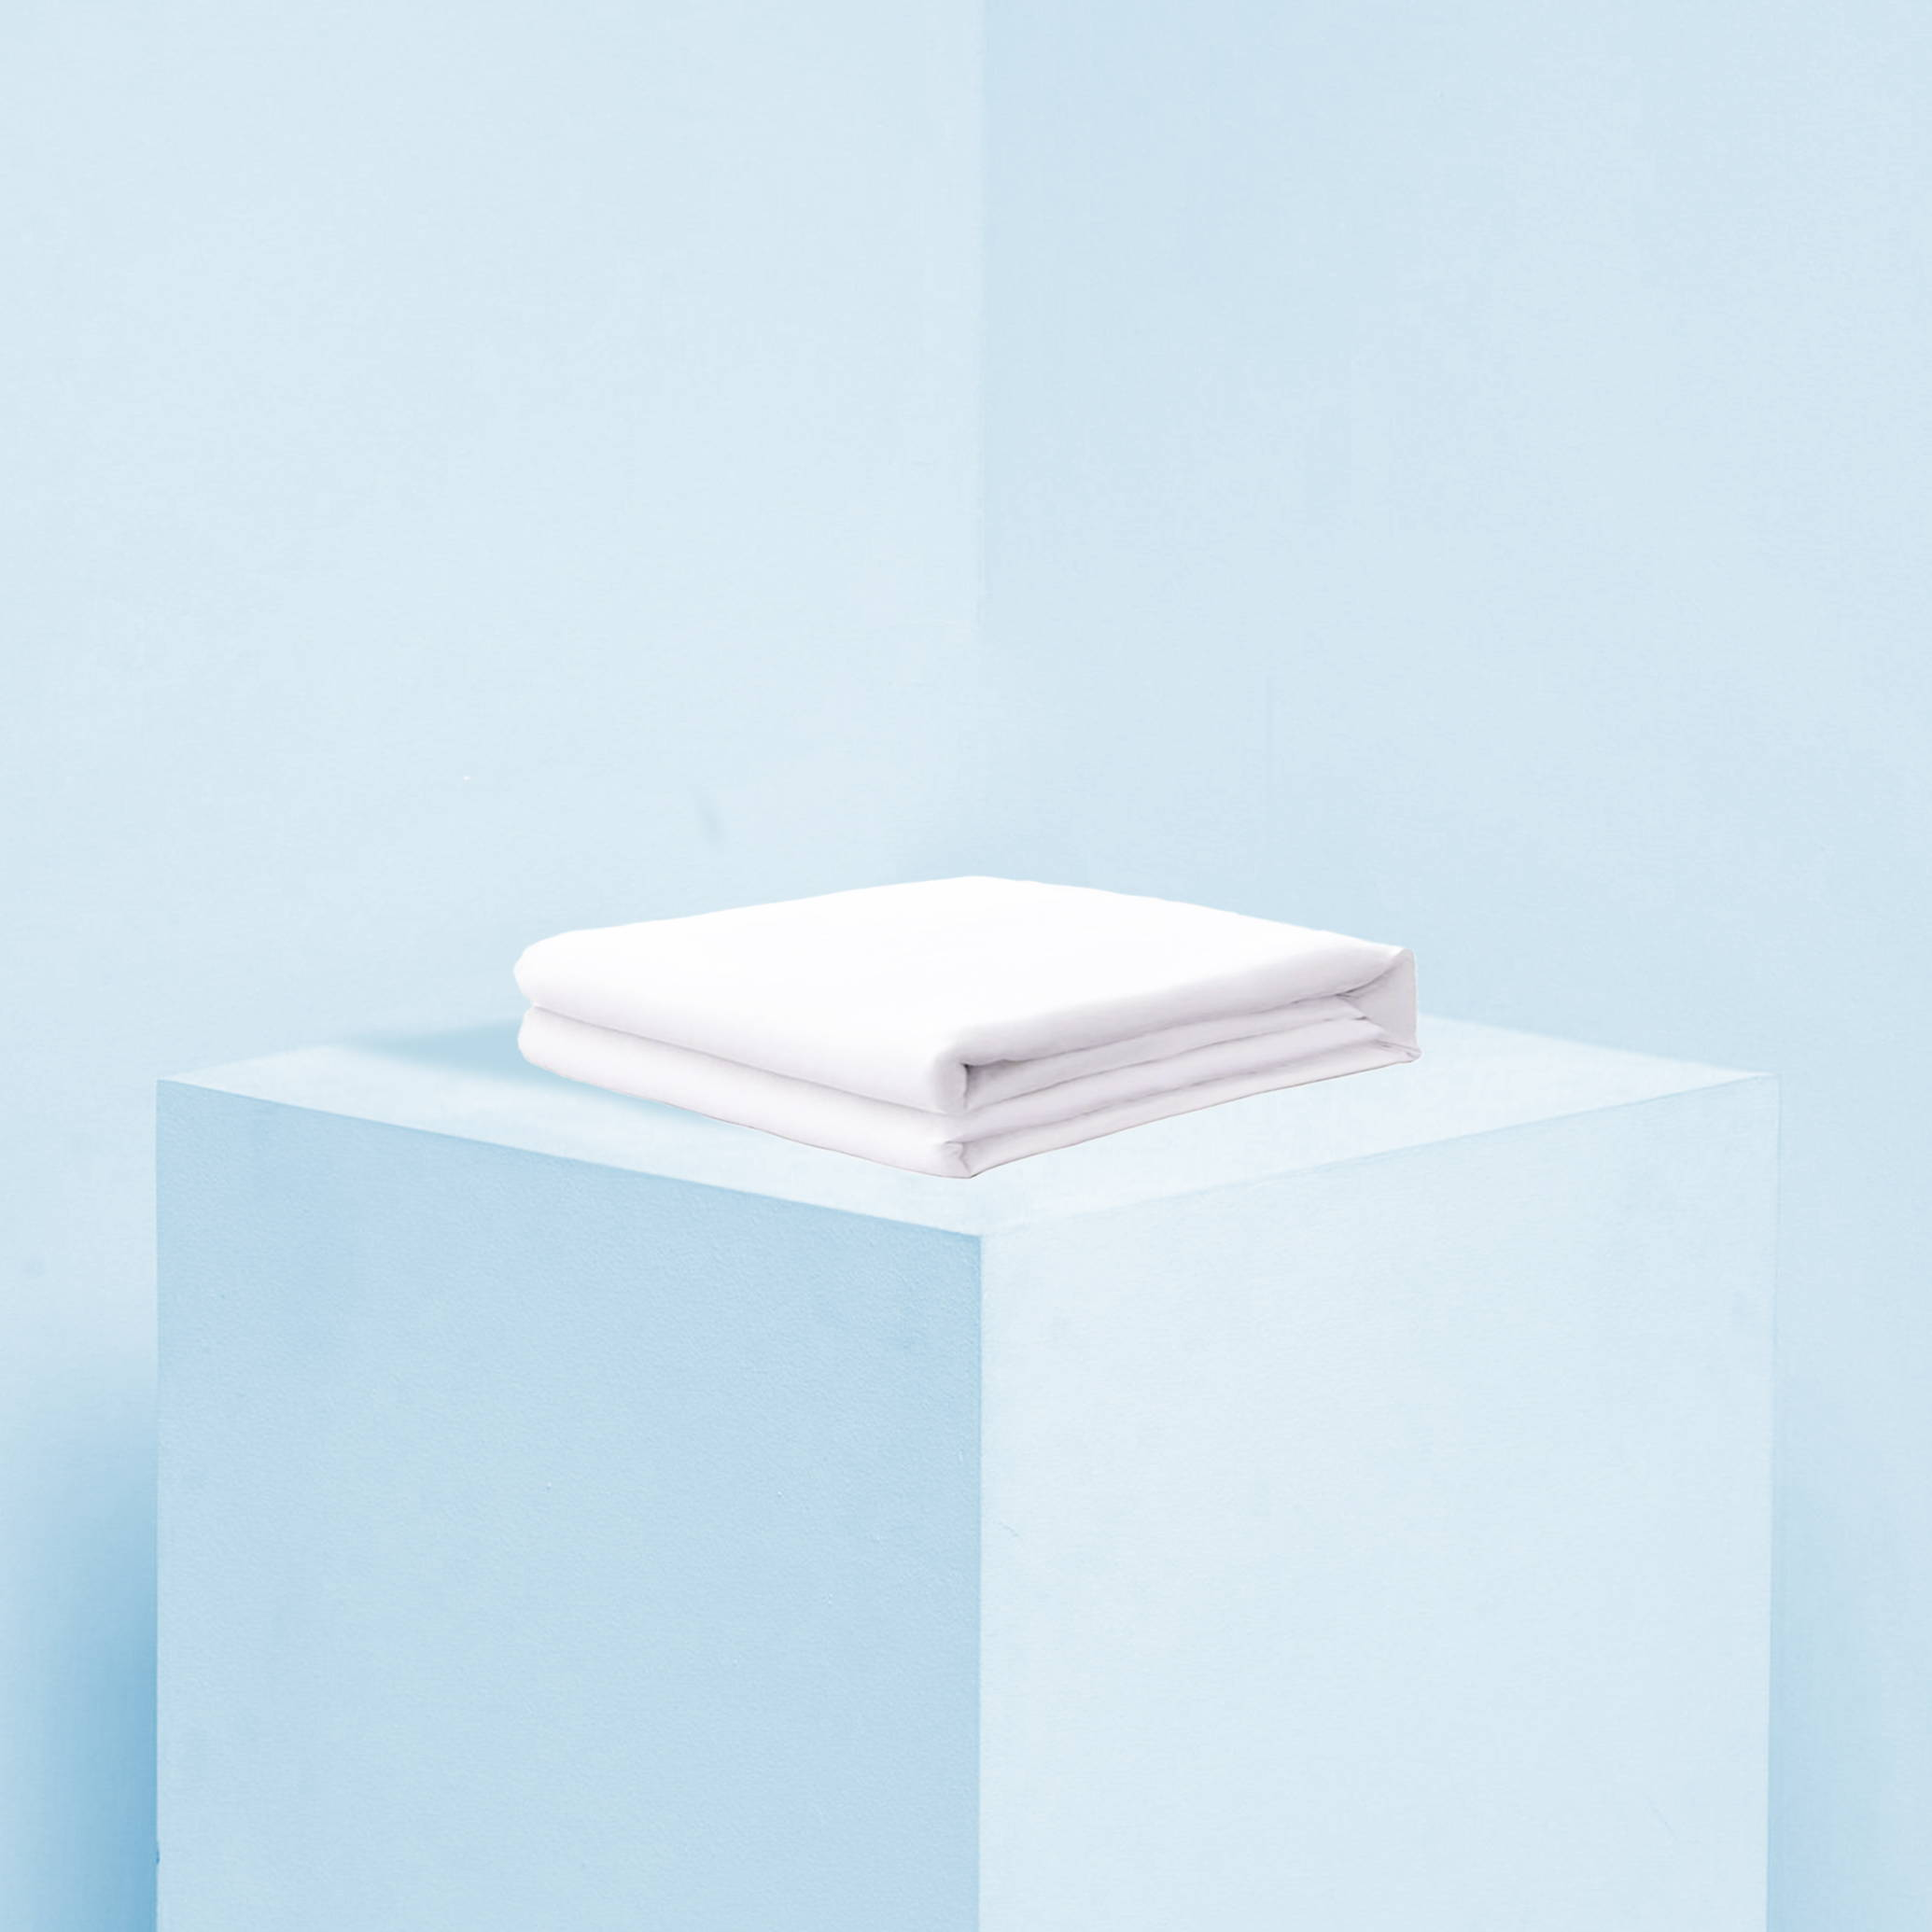 Heavenly Duvet Cover in the color white on a blue background